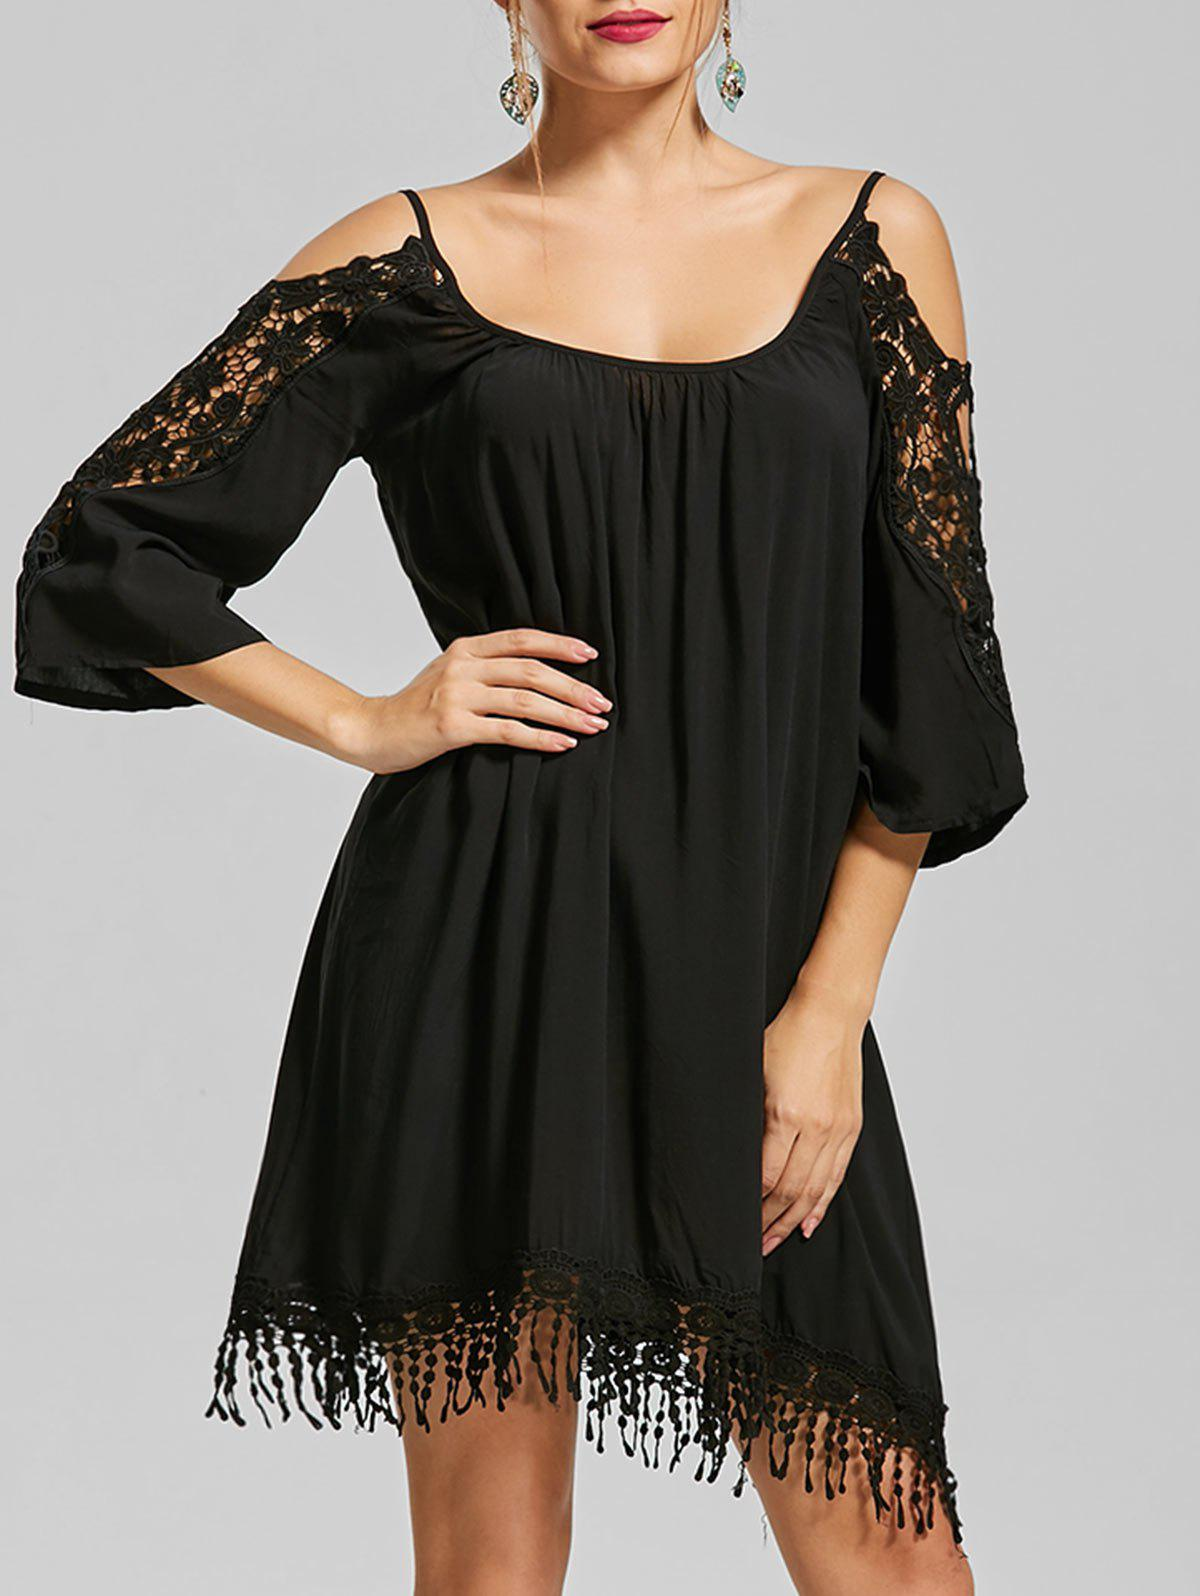 Cold Shoulder Lace Trim Fringe Mini Dress 215937509